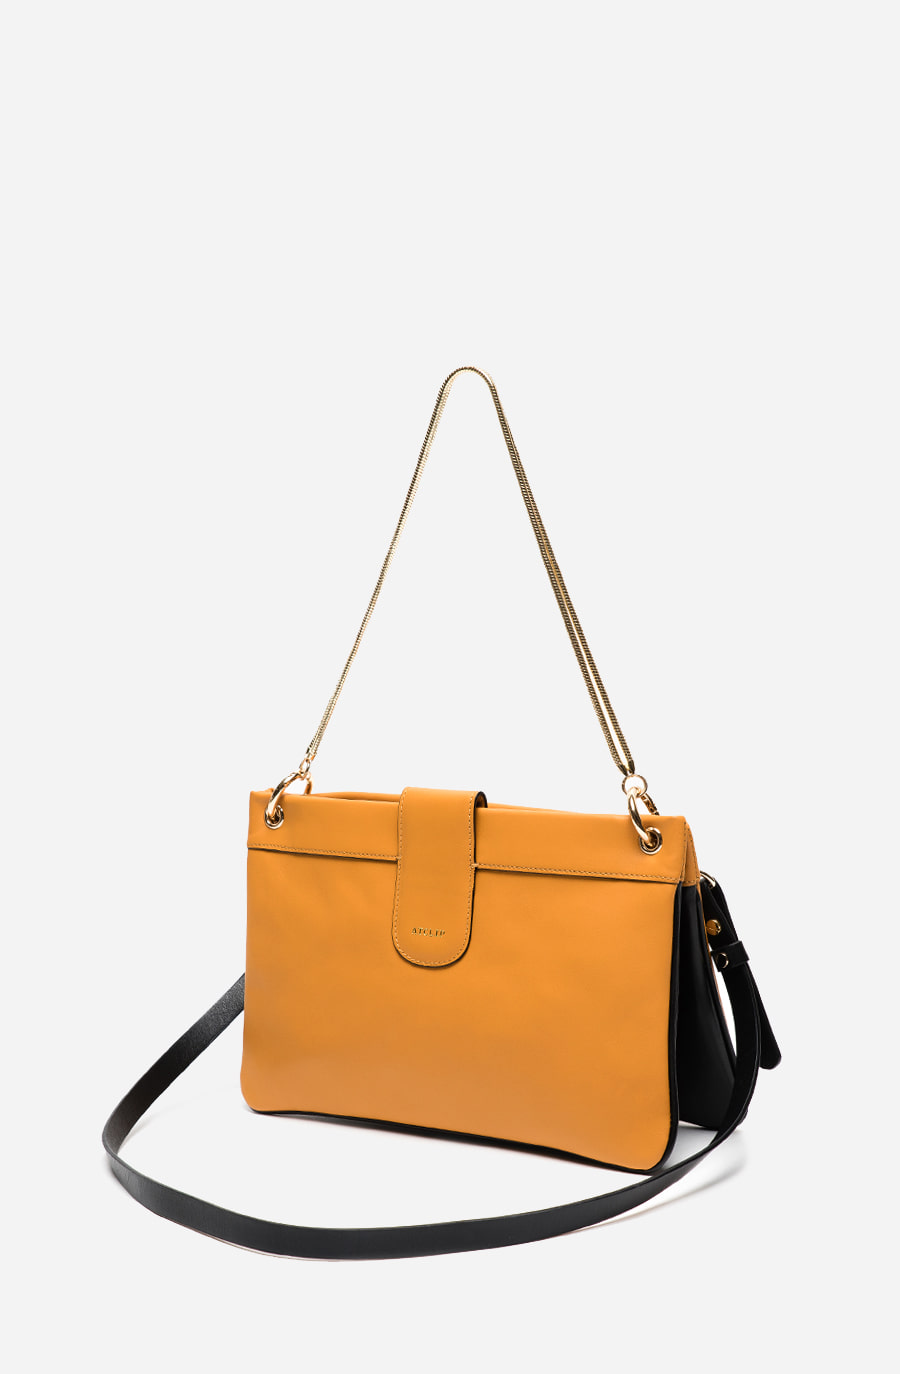 DOUBLE BAG (deep yellow)